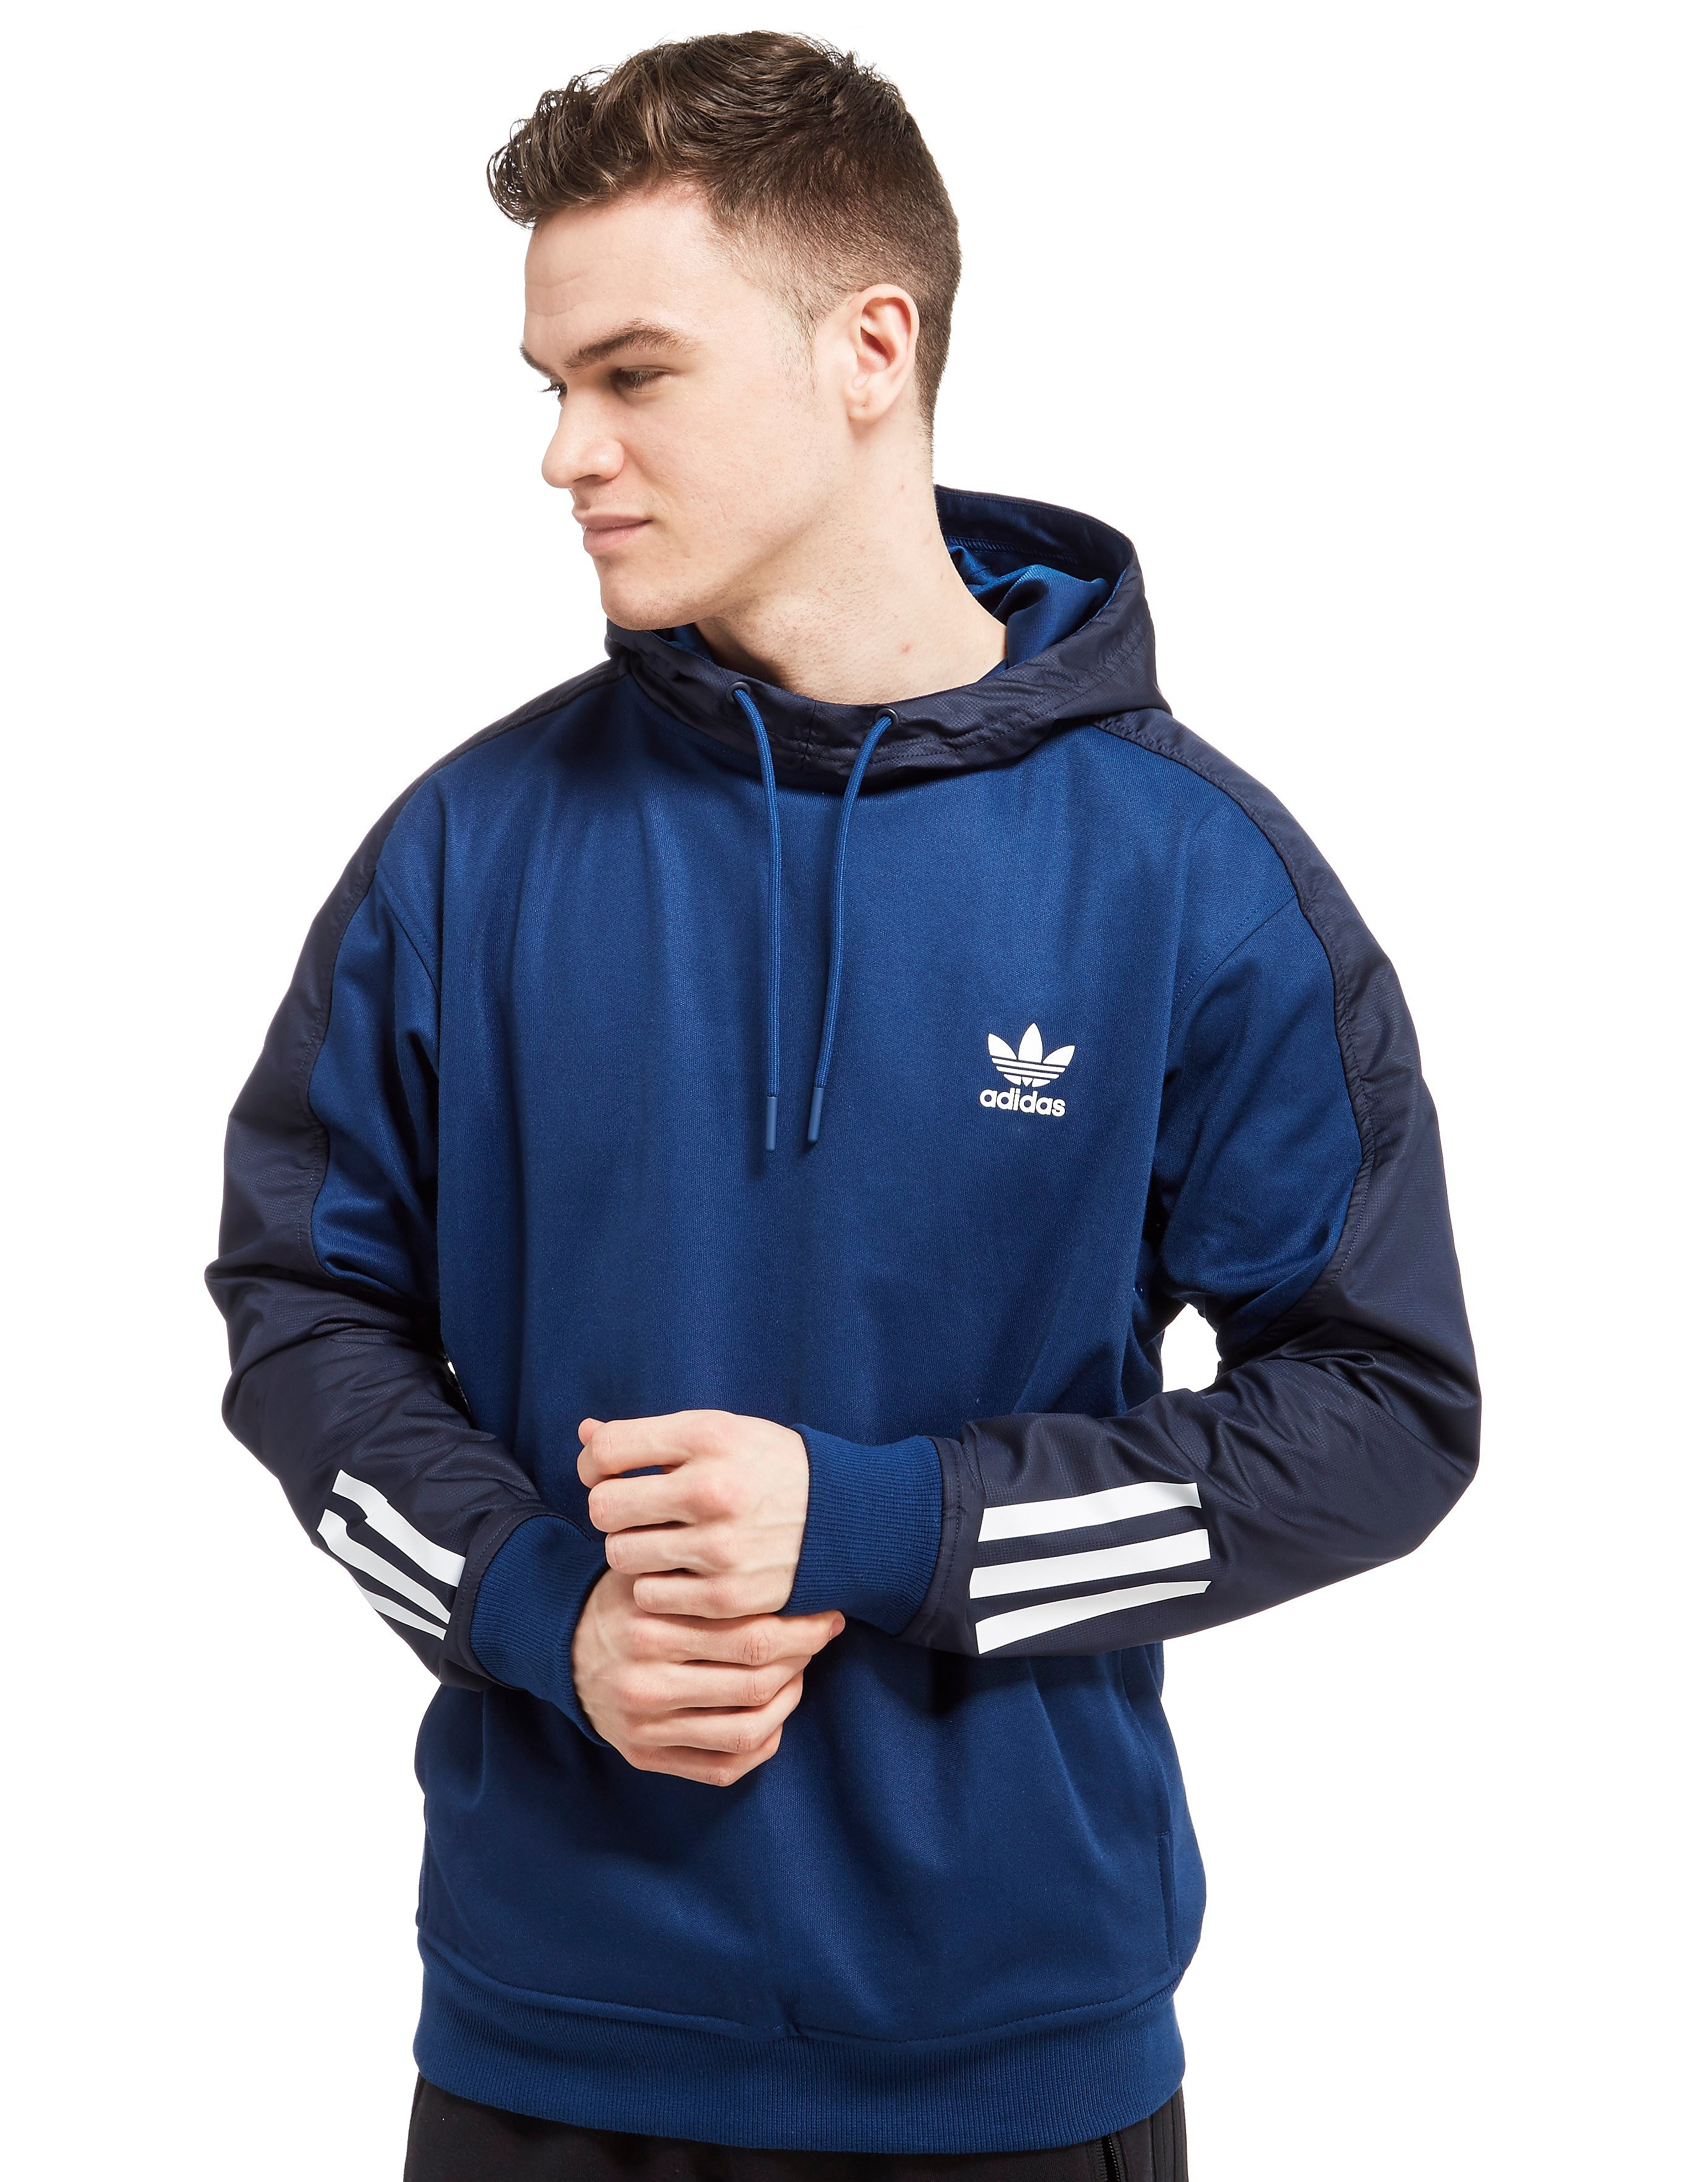 adidas Originals Oridoom Fabric Mix Hoody